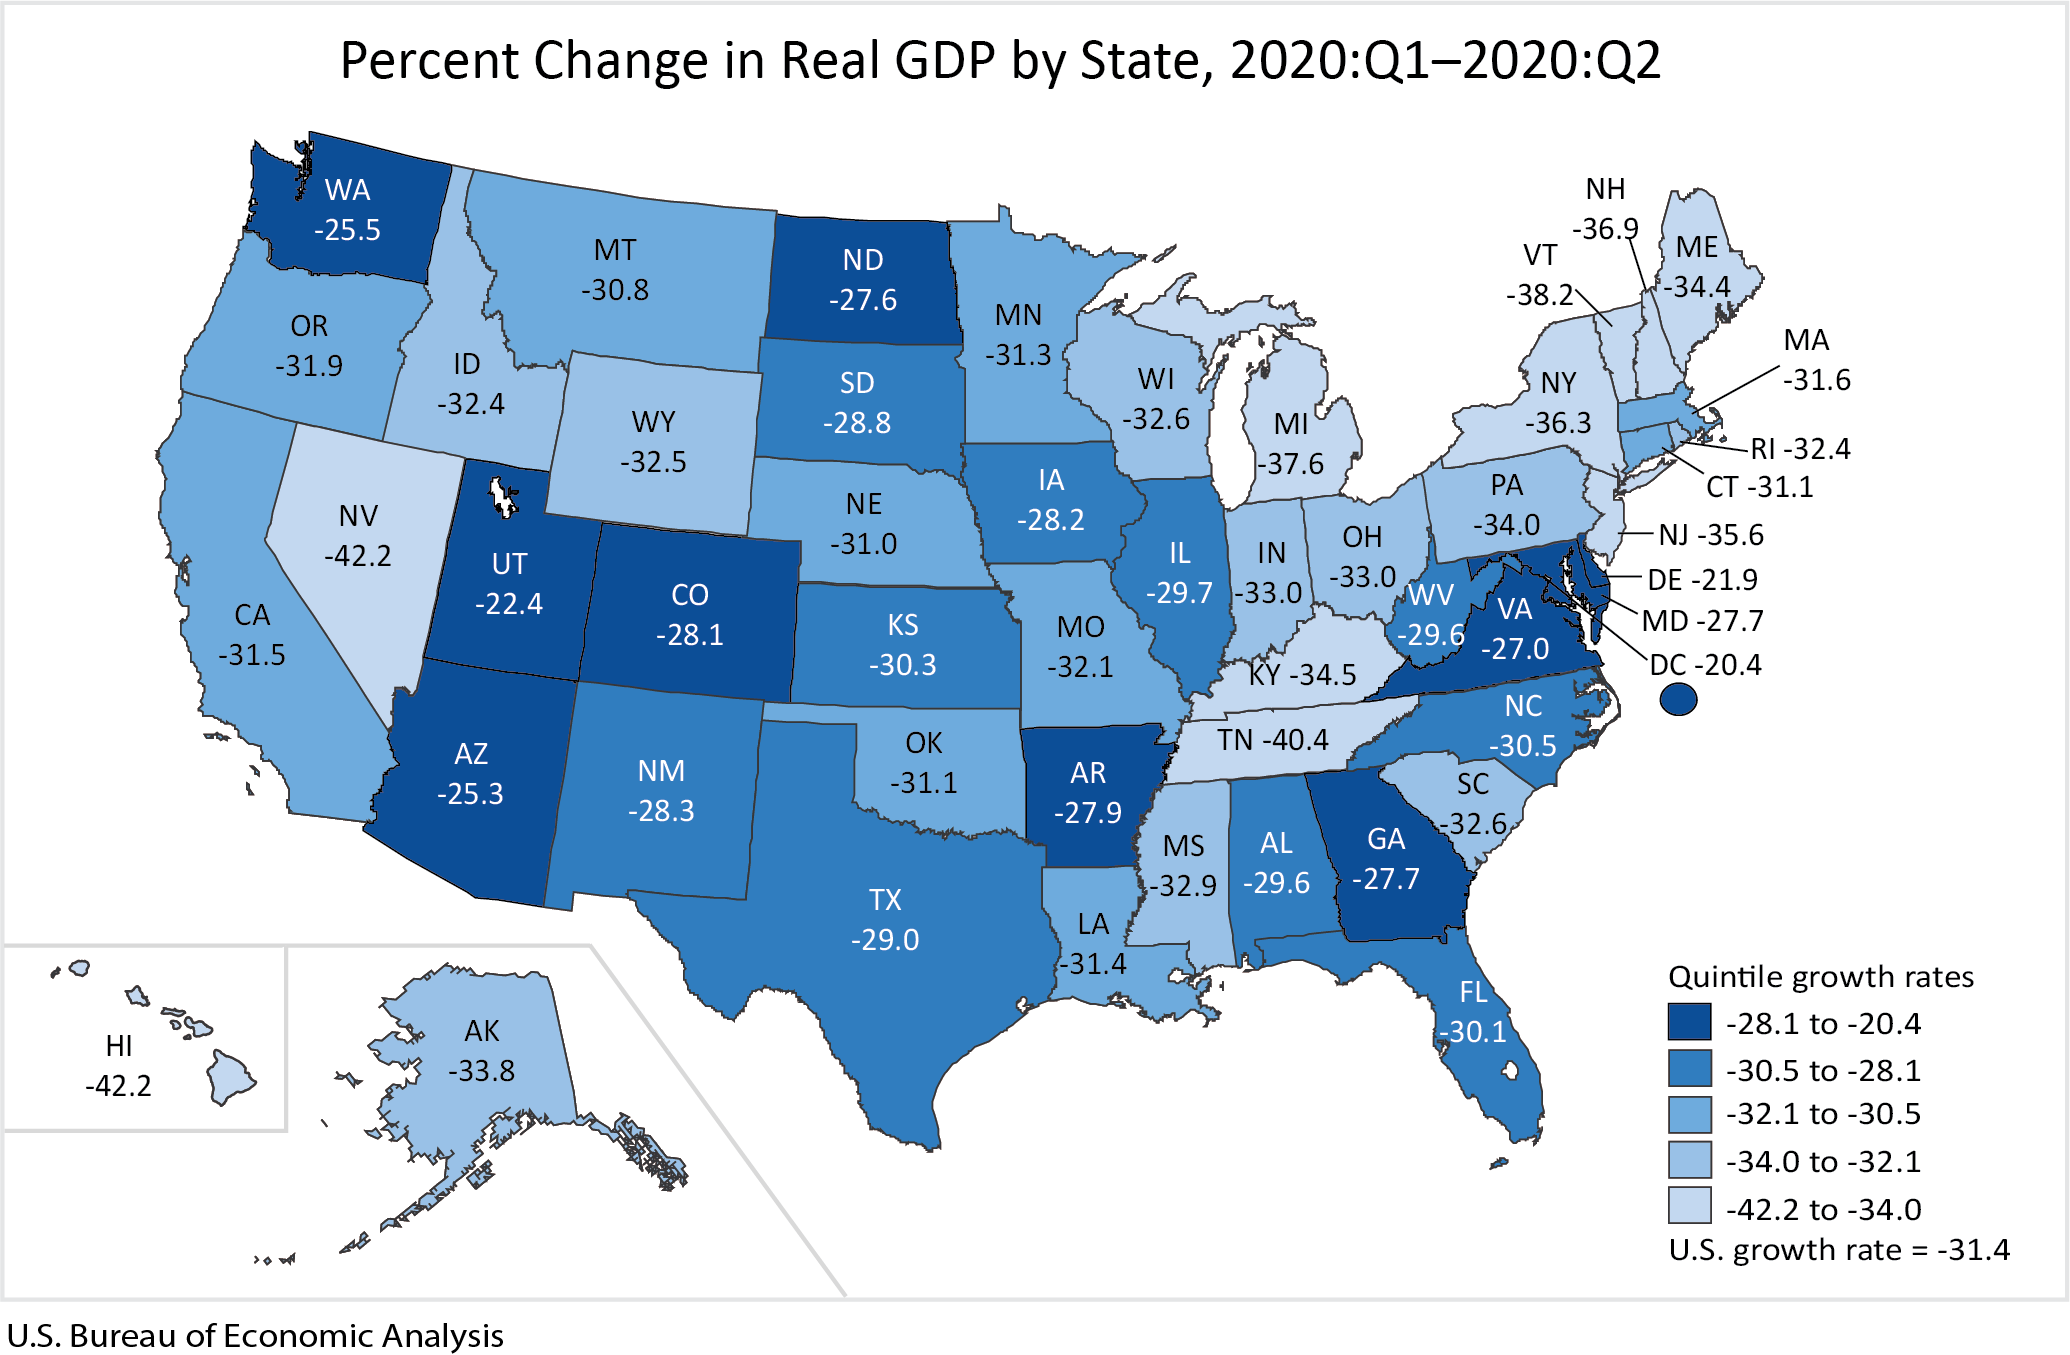 chart: Percent Change in Real GDP by State, 2020Q1-2020Q2